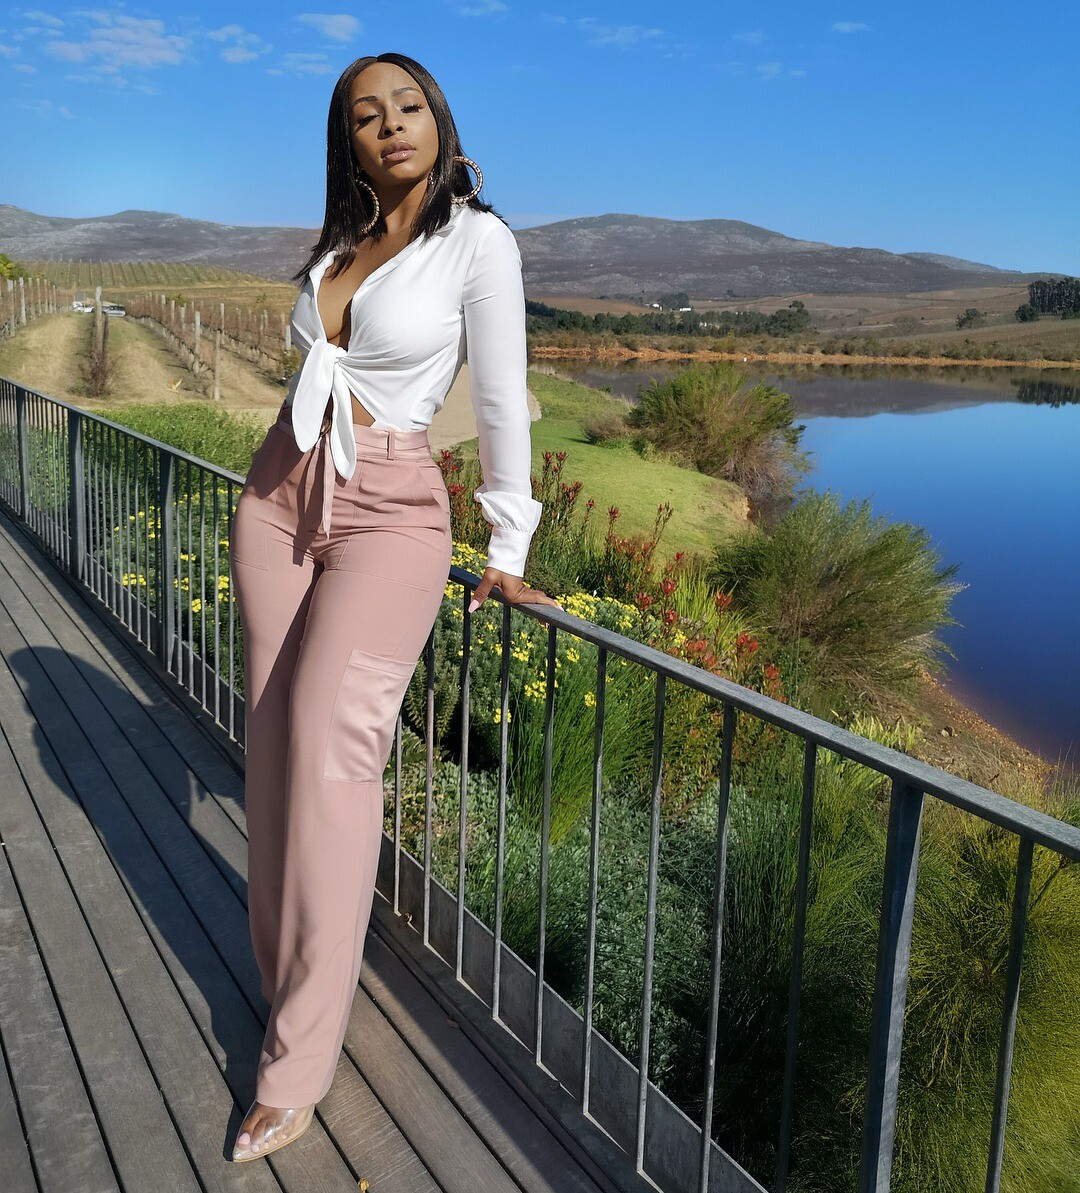 Sexy Pictures of Boity